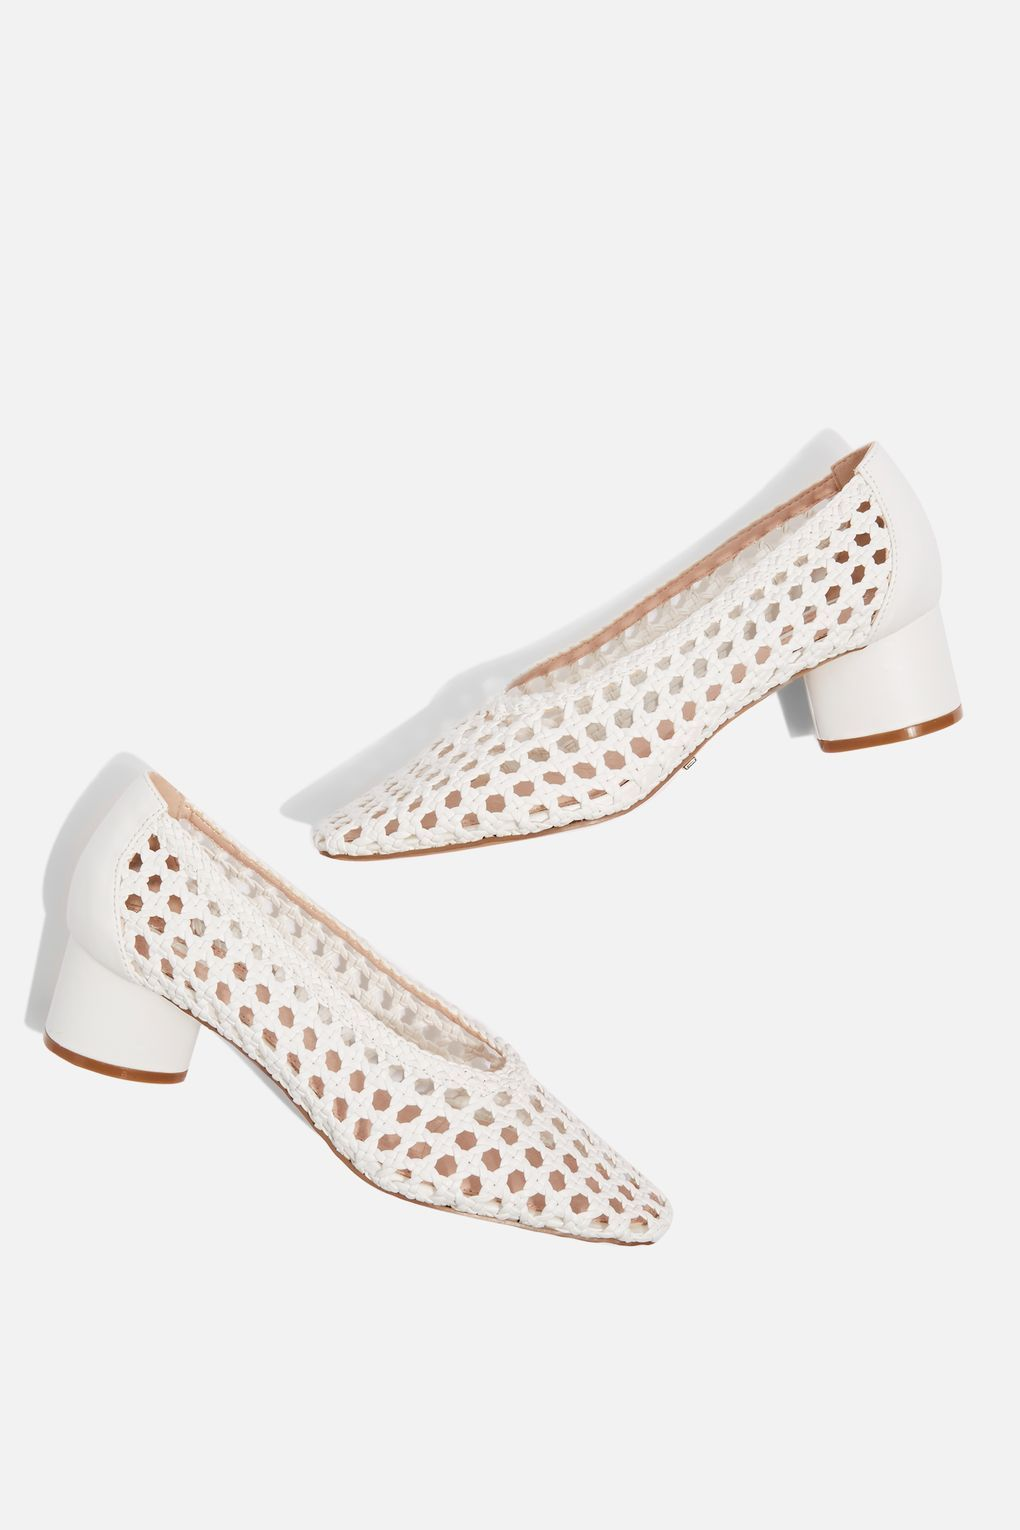 3327e2bdcc Carousel Image 0 Topshop Shoes, Spring Fashion Outfits, Spring Shoes, Mid Heel  Shoes